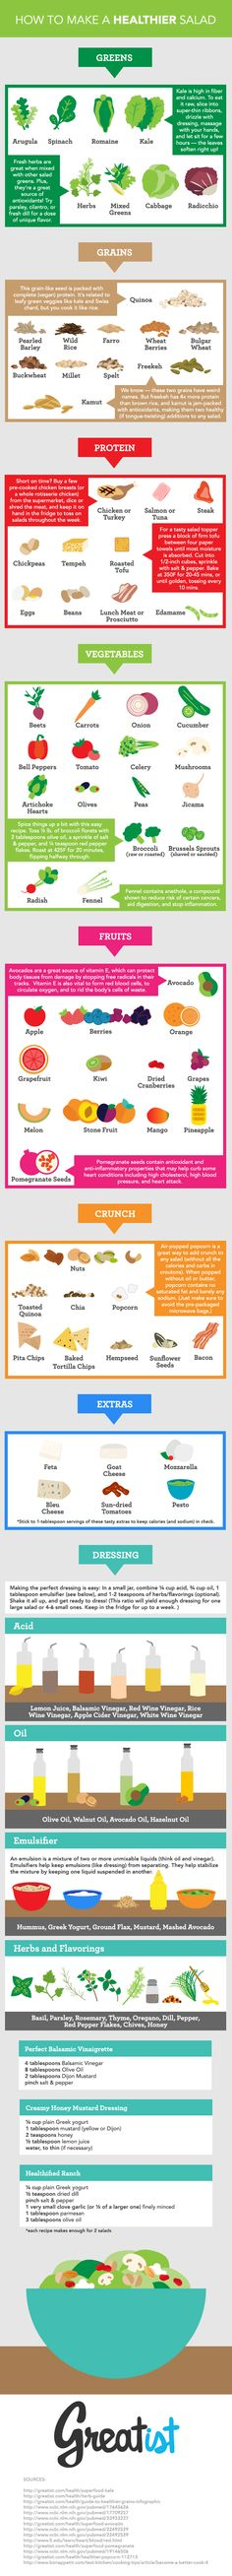 How to Make a Healthier Salad (infographic)